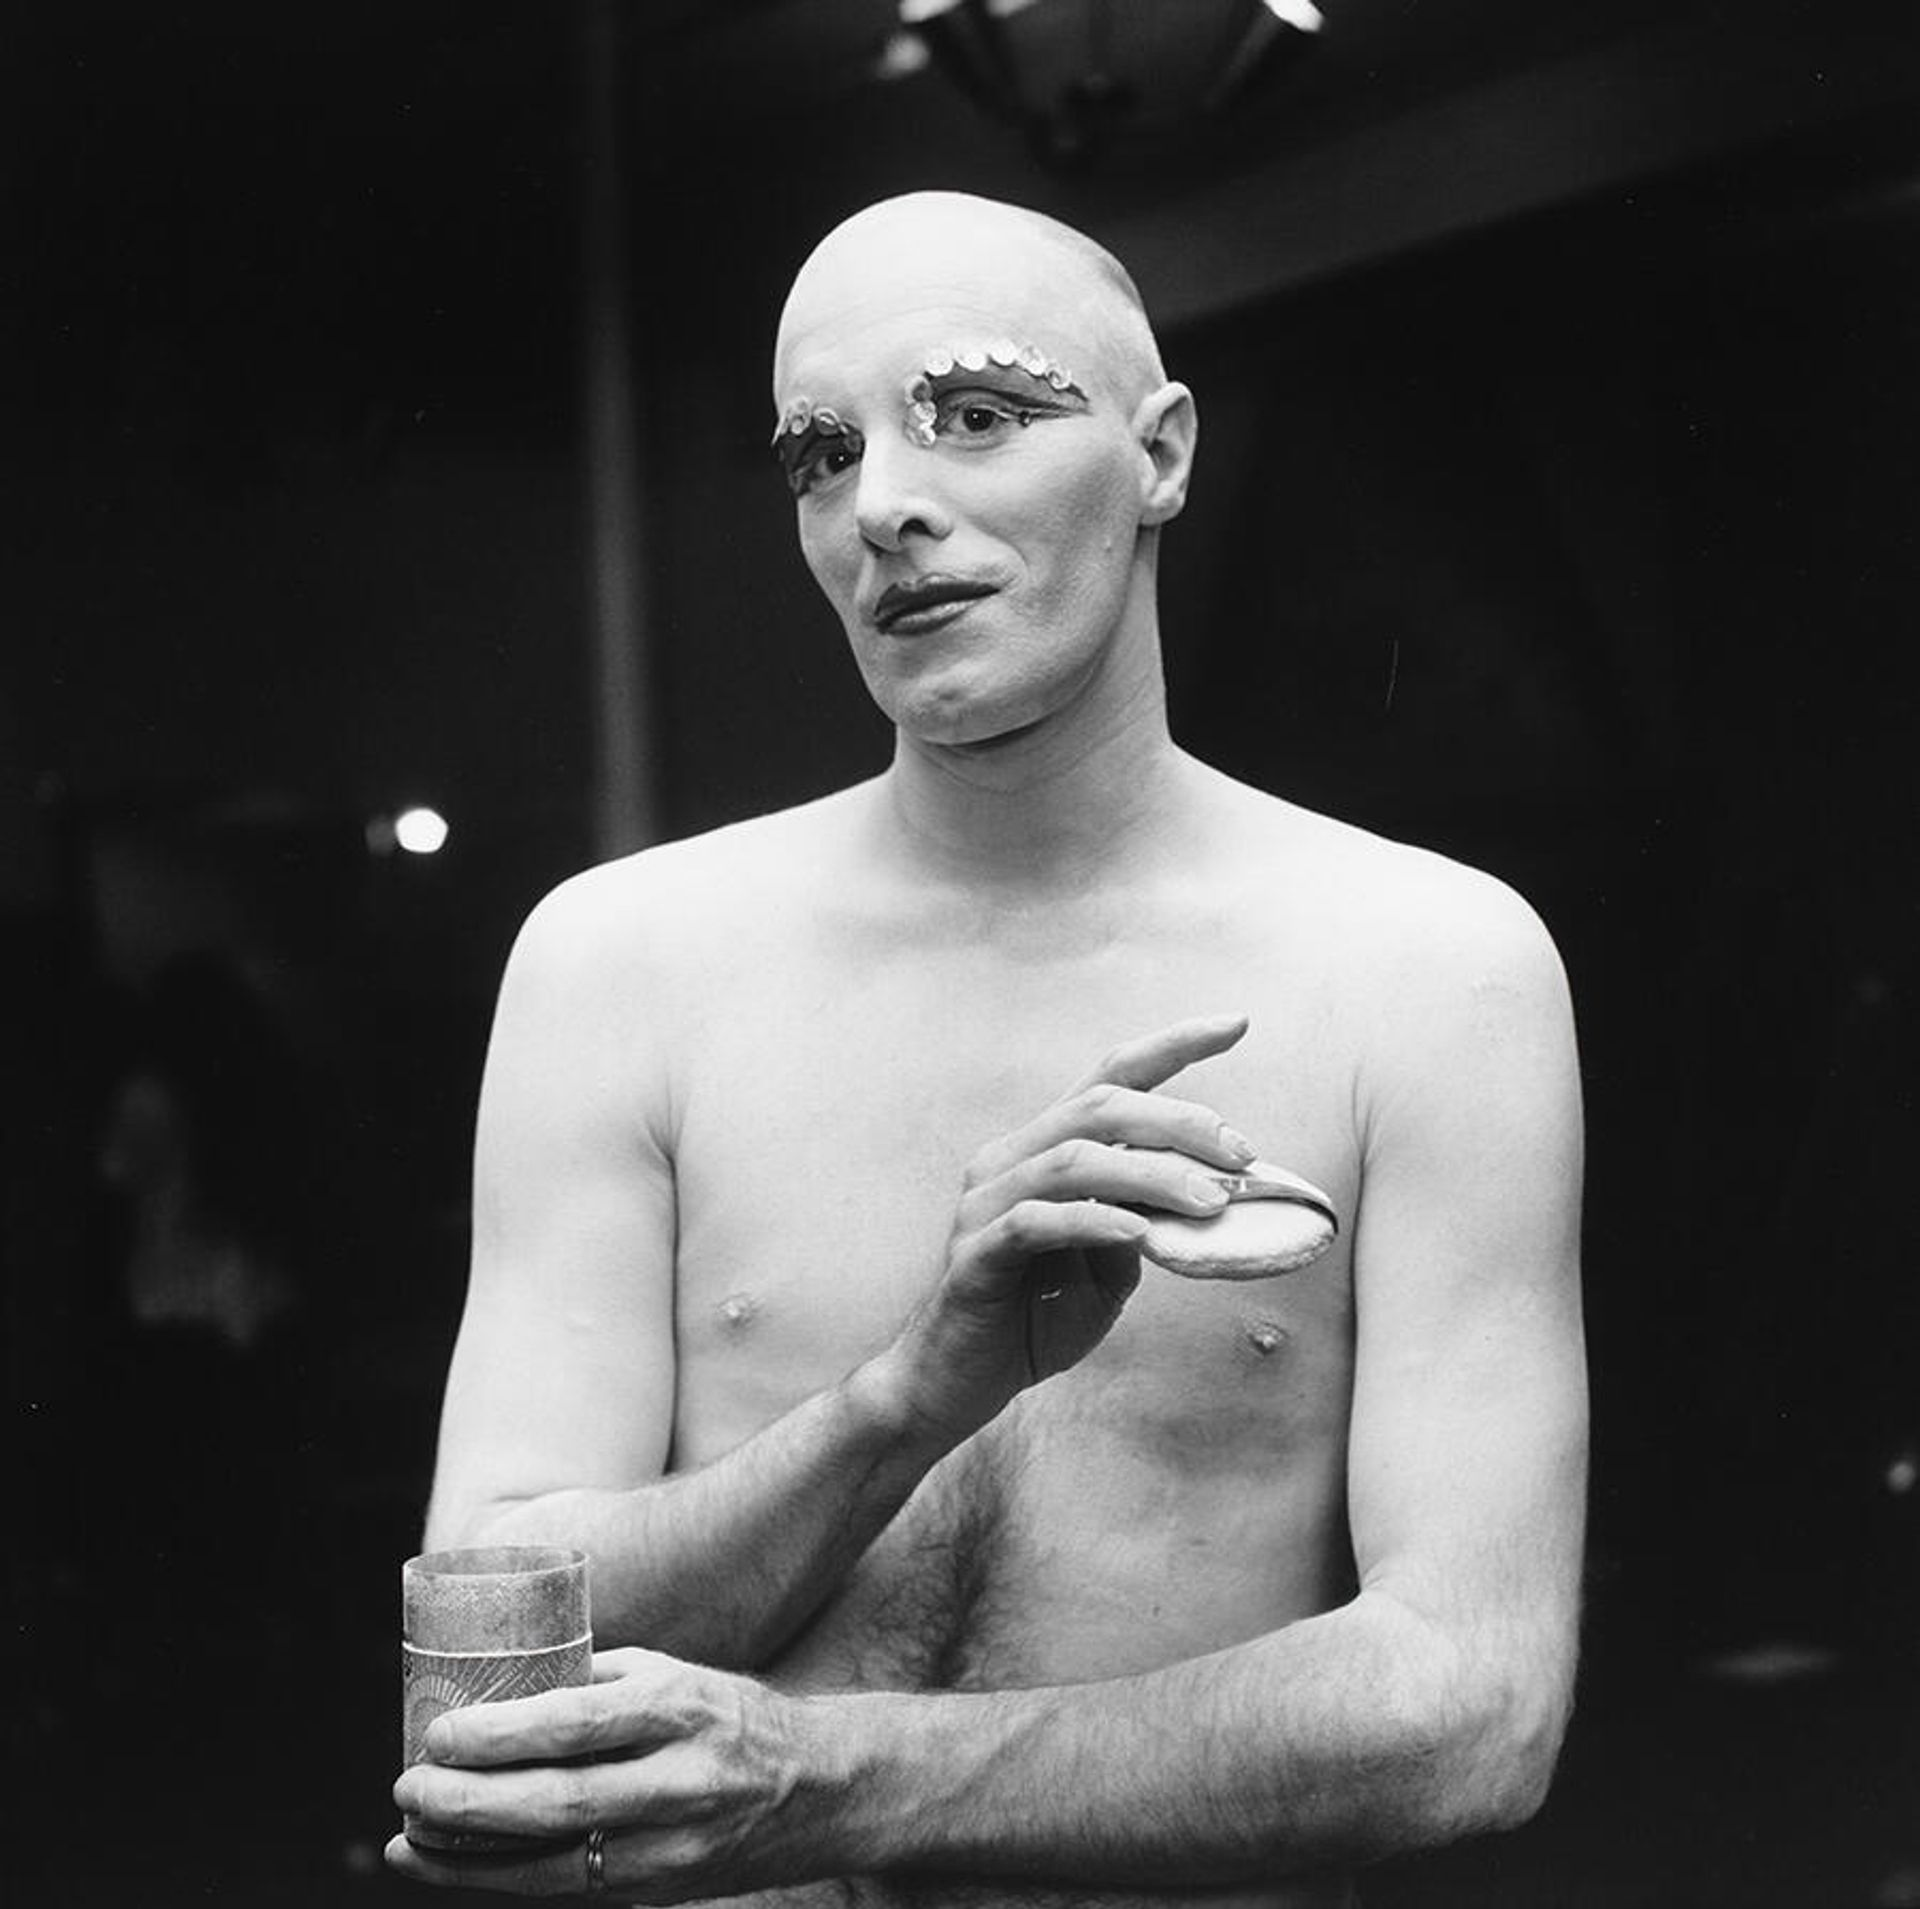 Peter Hujar, Larry Ree Backstage (II) (1973) © 1987 The Peter Hujar Archive LLC; courtesy: The Peter Hujar Archive and Maureen Paley, London